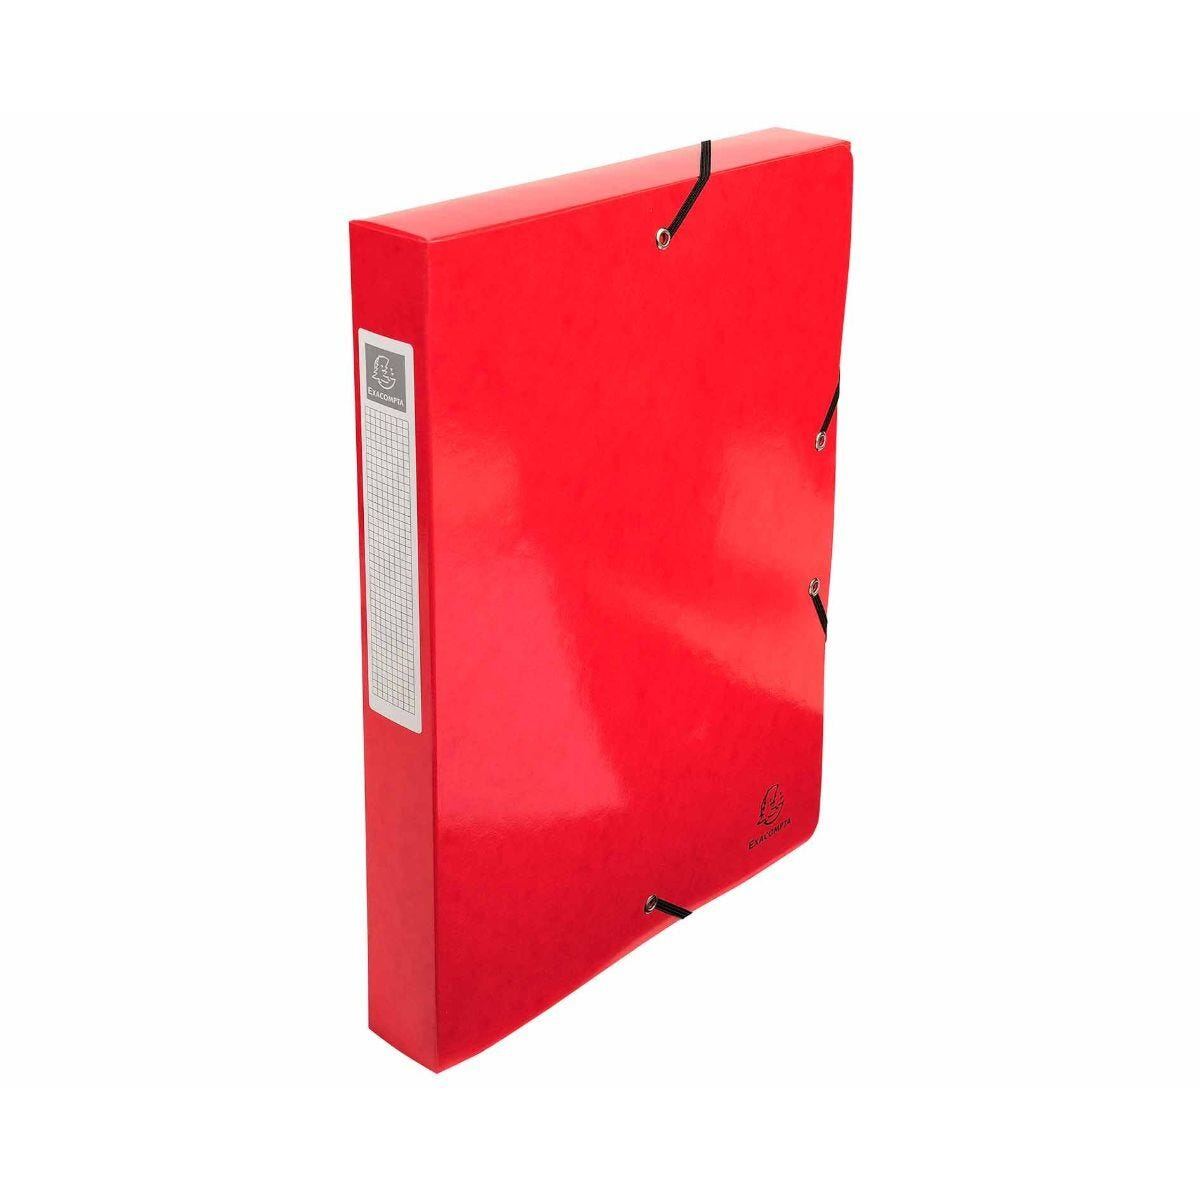 Exacompta Iderama Box File A4 Pack of 8 600gsm Red